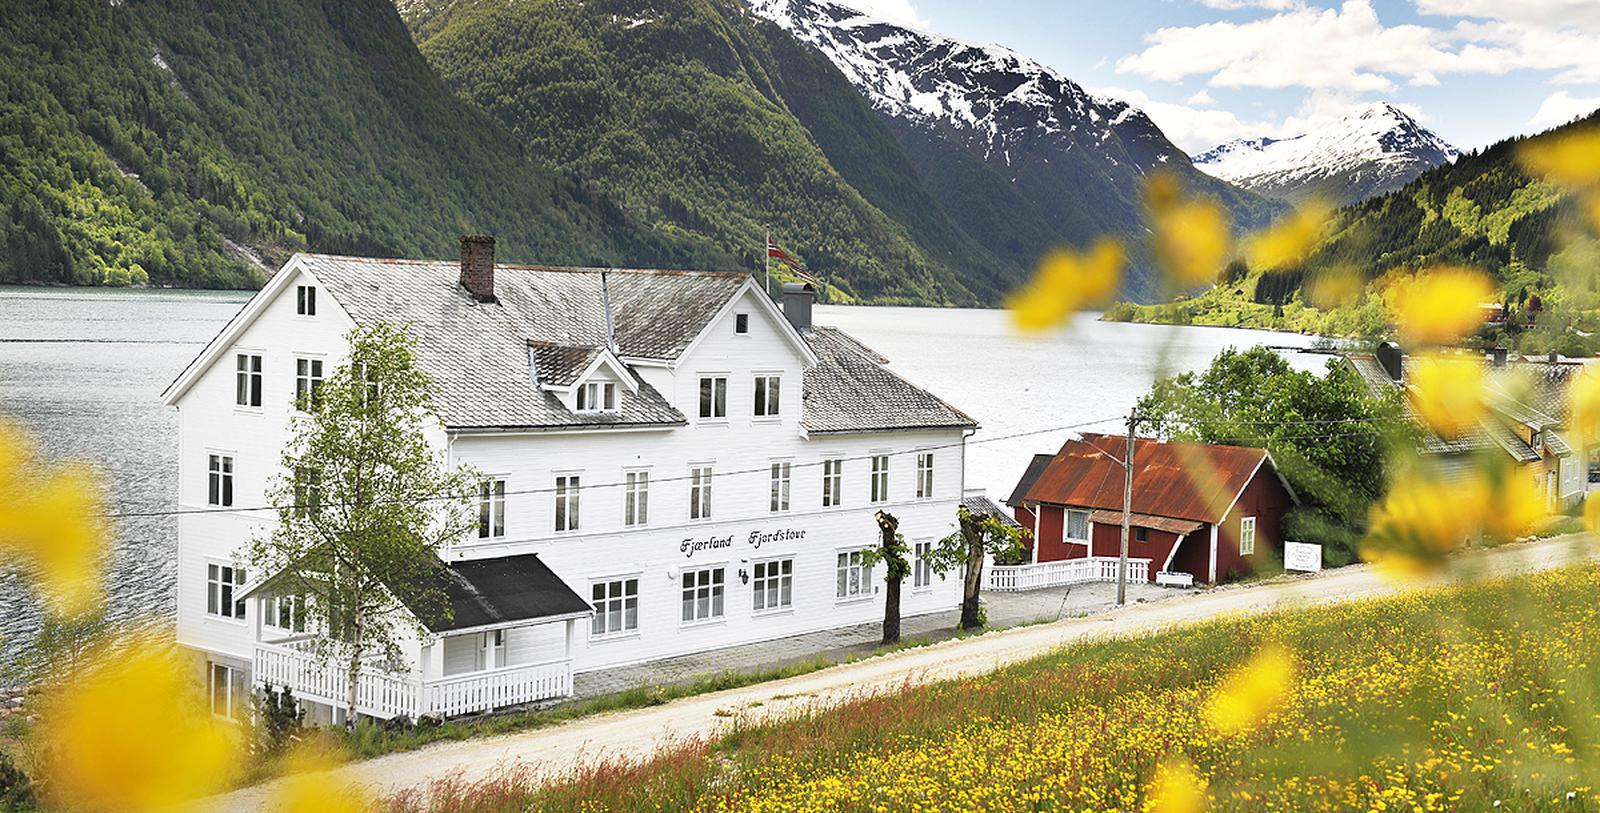 Image of Mountain Landscape Fjaerland Fjordstove Hotel & Restaurant, 1937, Member of Historic Hotels Worldwide, in Fjærland, Norway, Experience